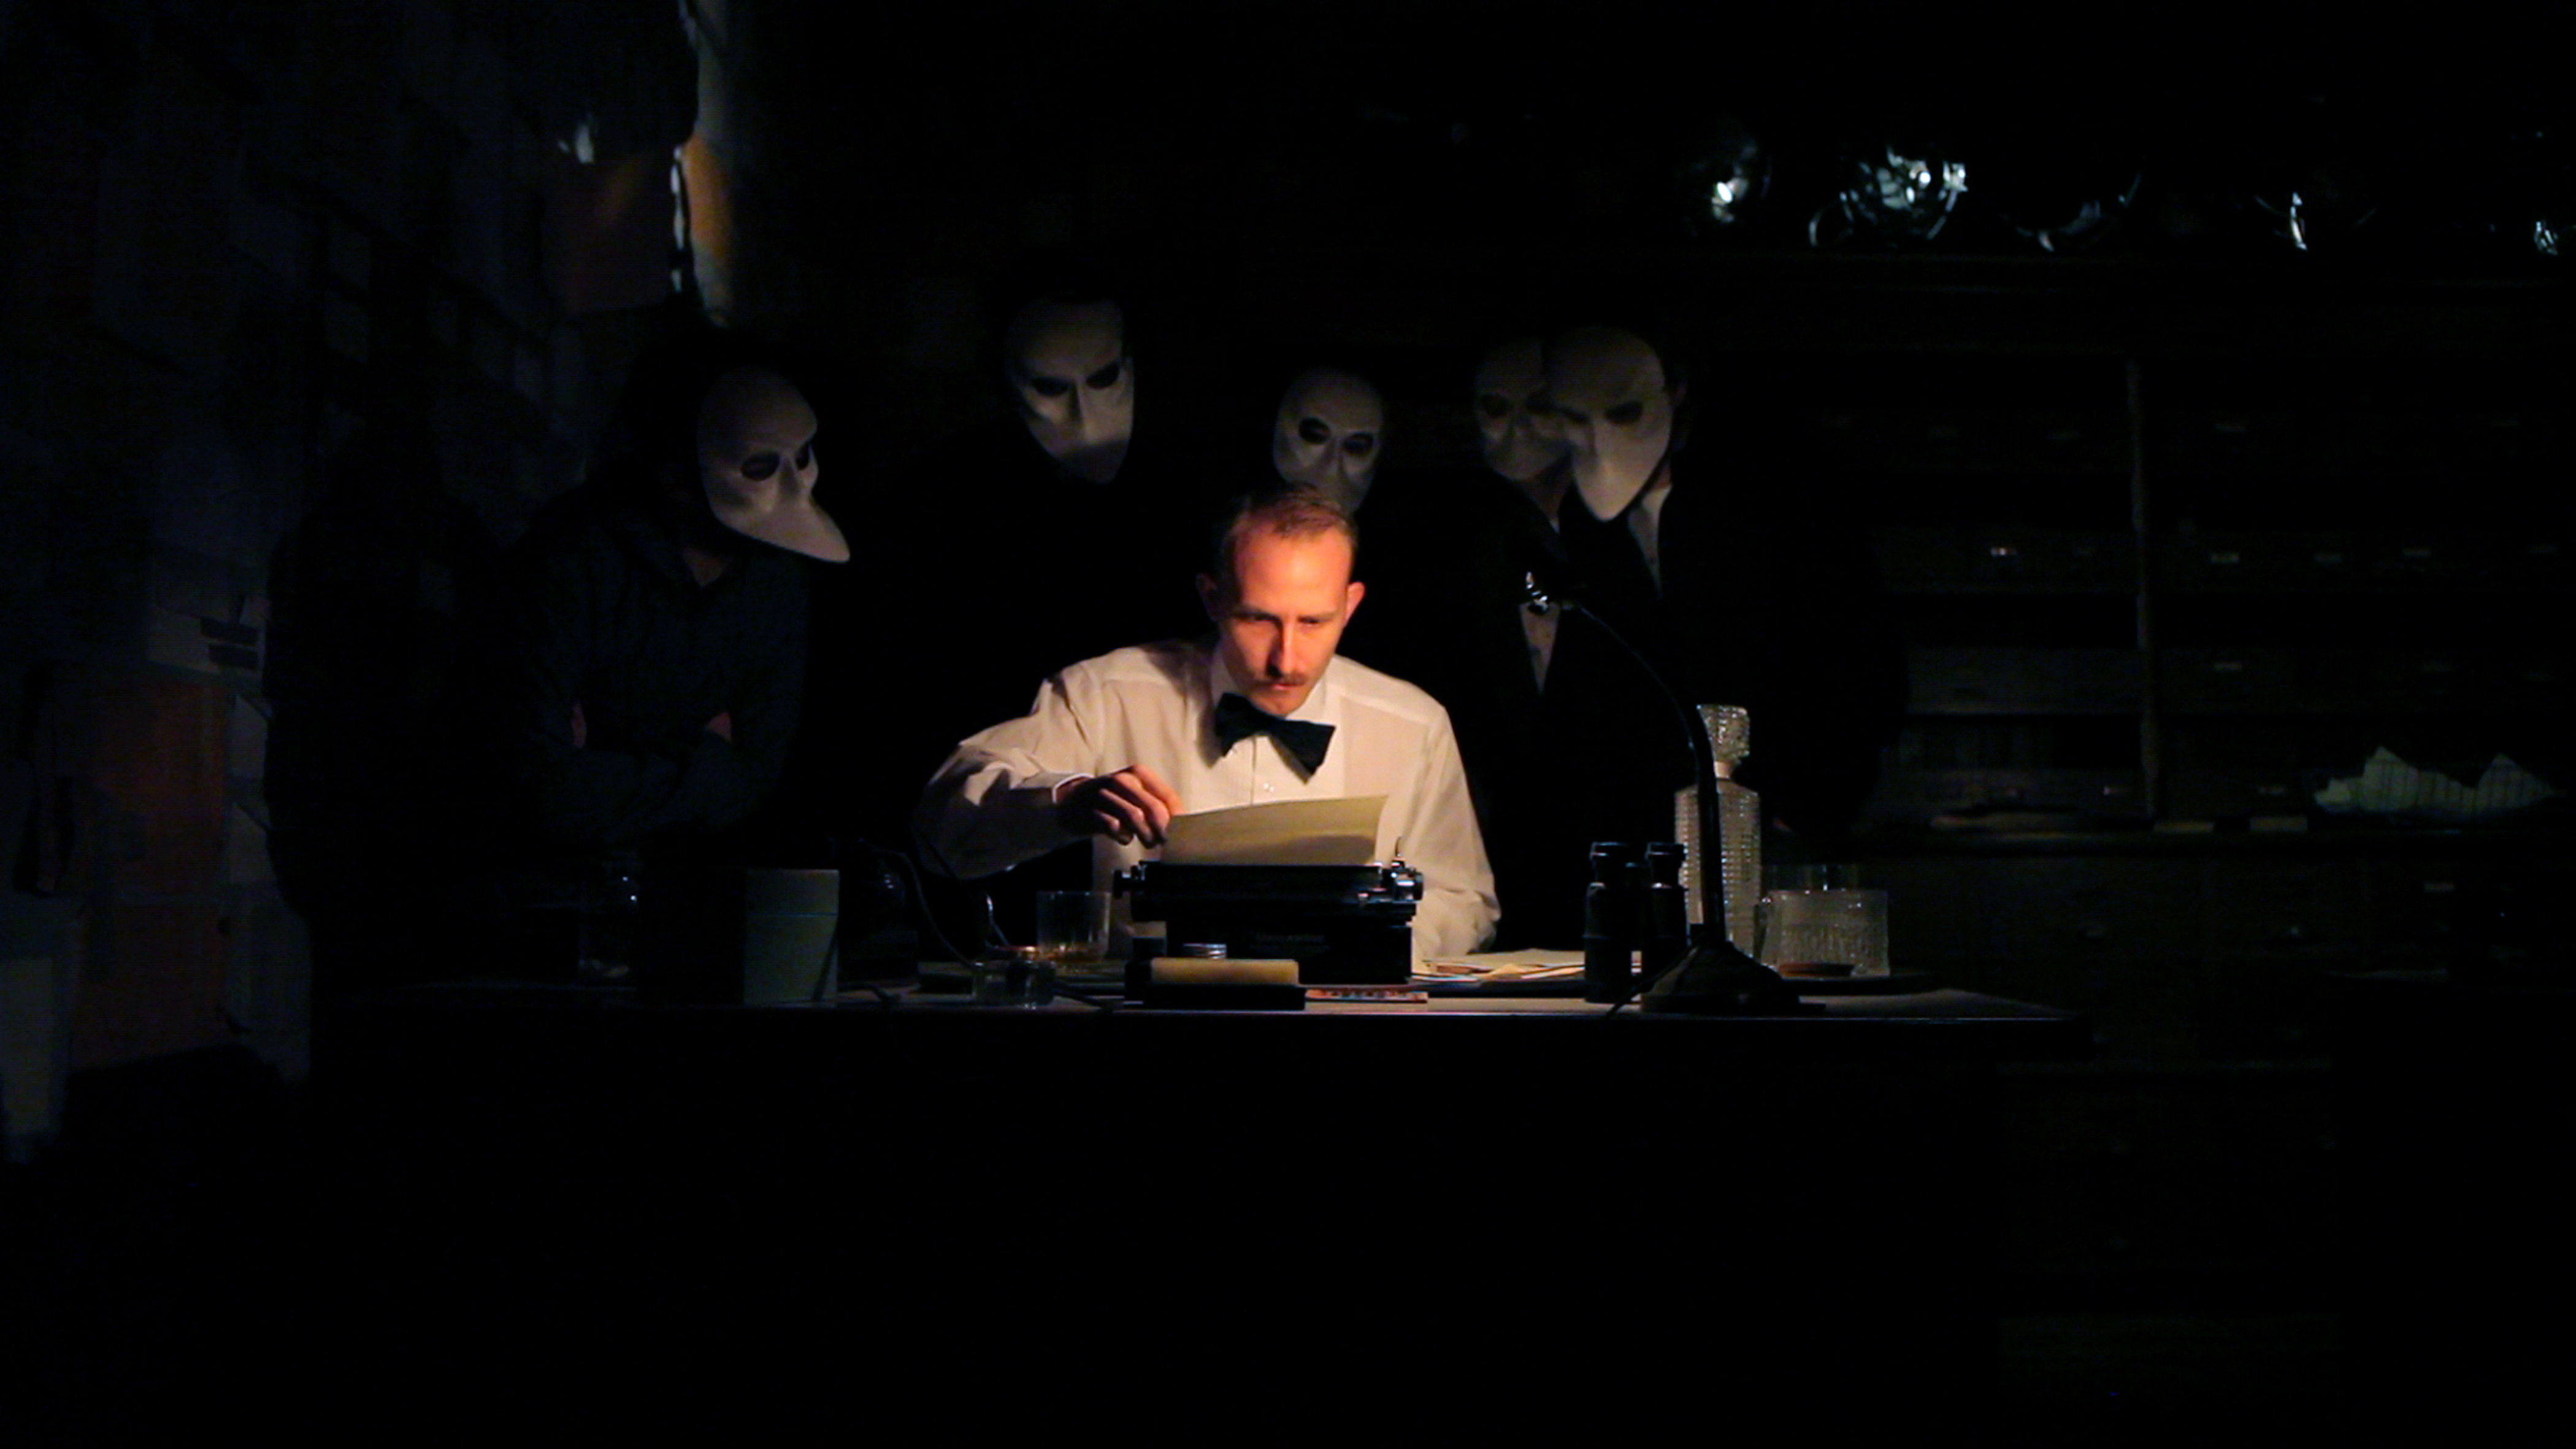 Spotlight on a man sat at desk using a typewriter surrounded by masked onlookers